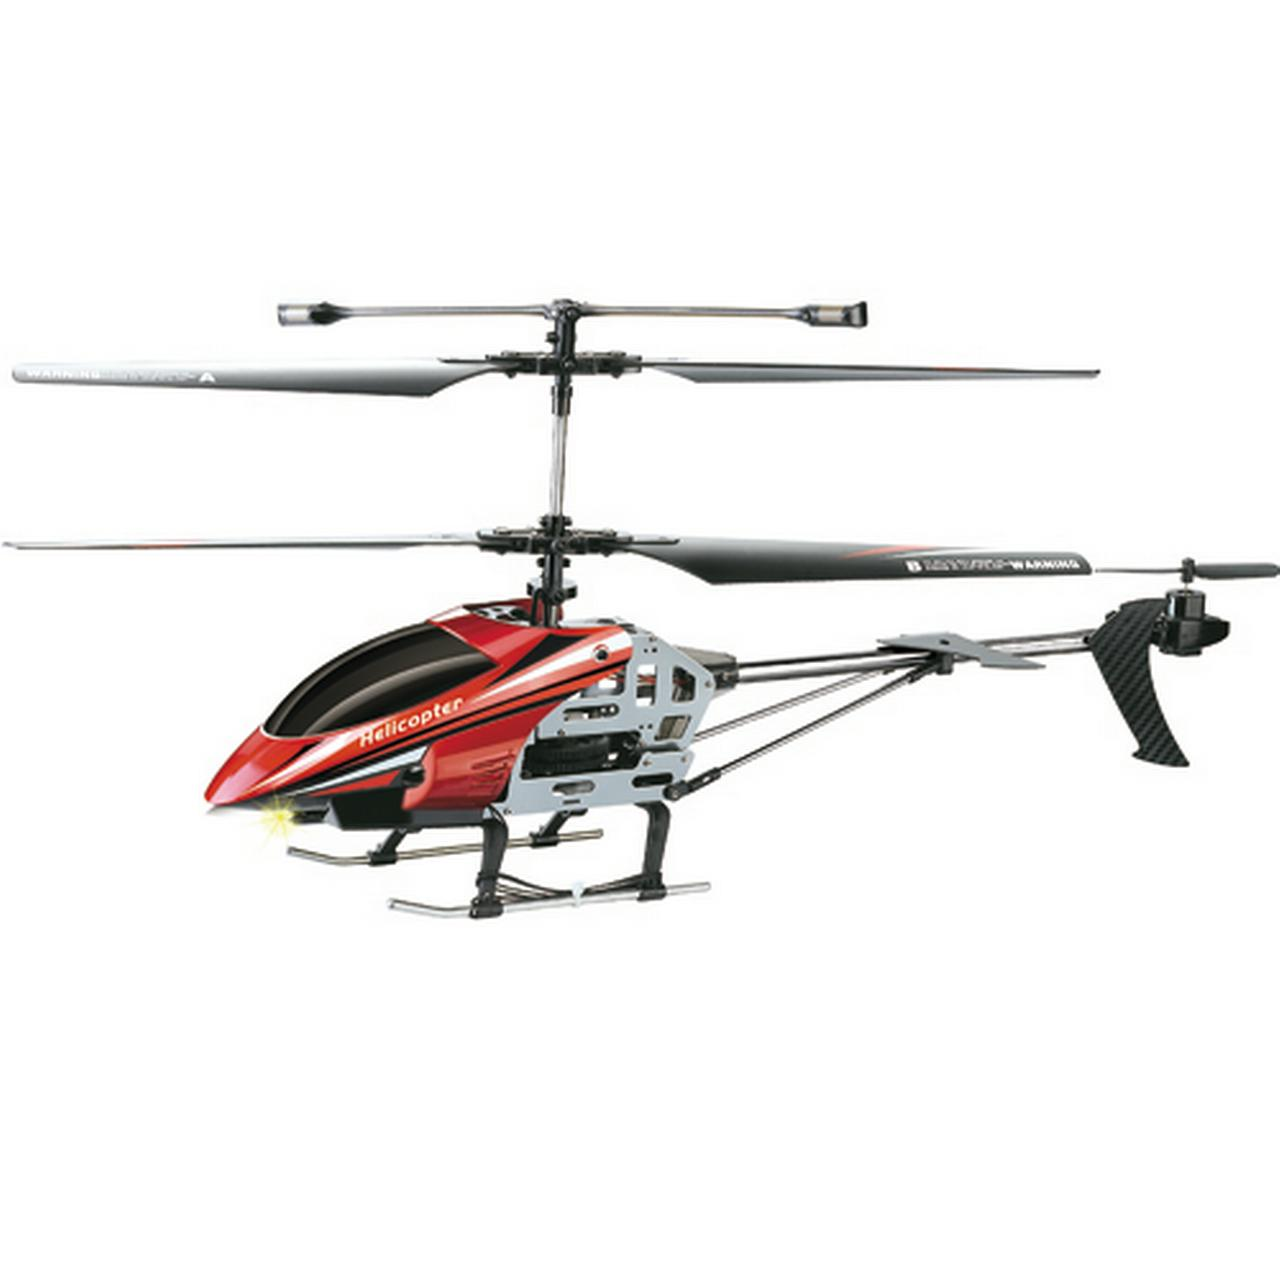 """Odyssey ODY352R Quantum 18"""" Gyro Helicopter (Red)"""